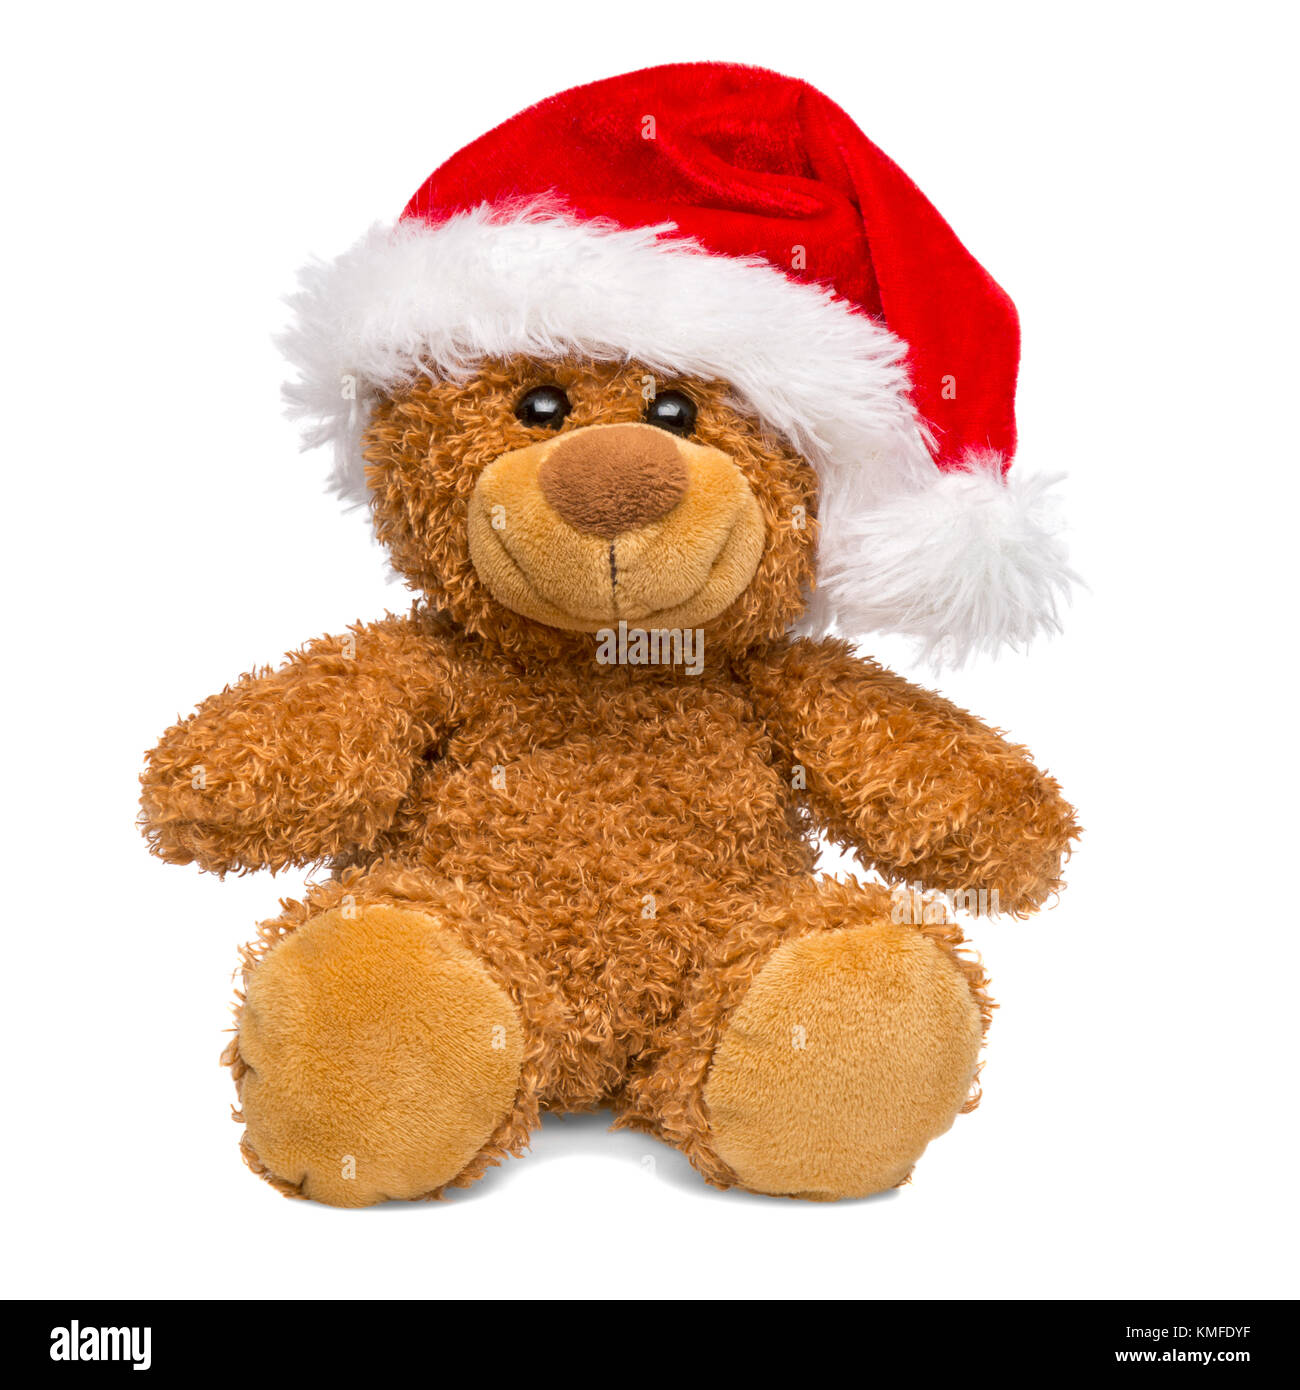 35cd9bfc64441 Christmas teddy bear wearing a Santa Claus hat isolated on white  background